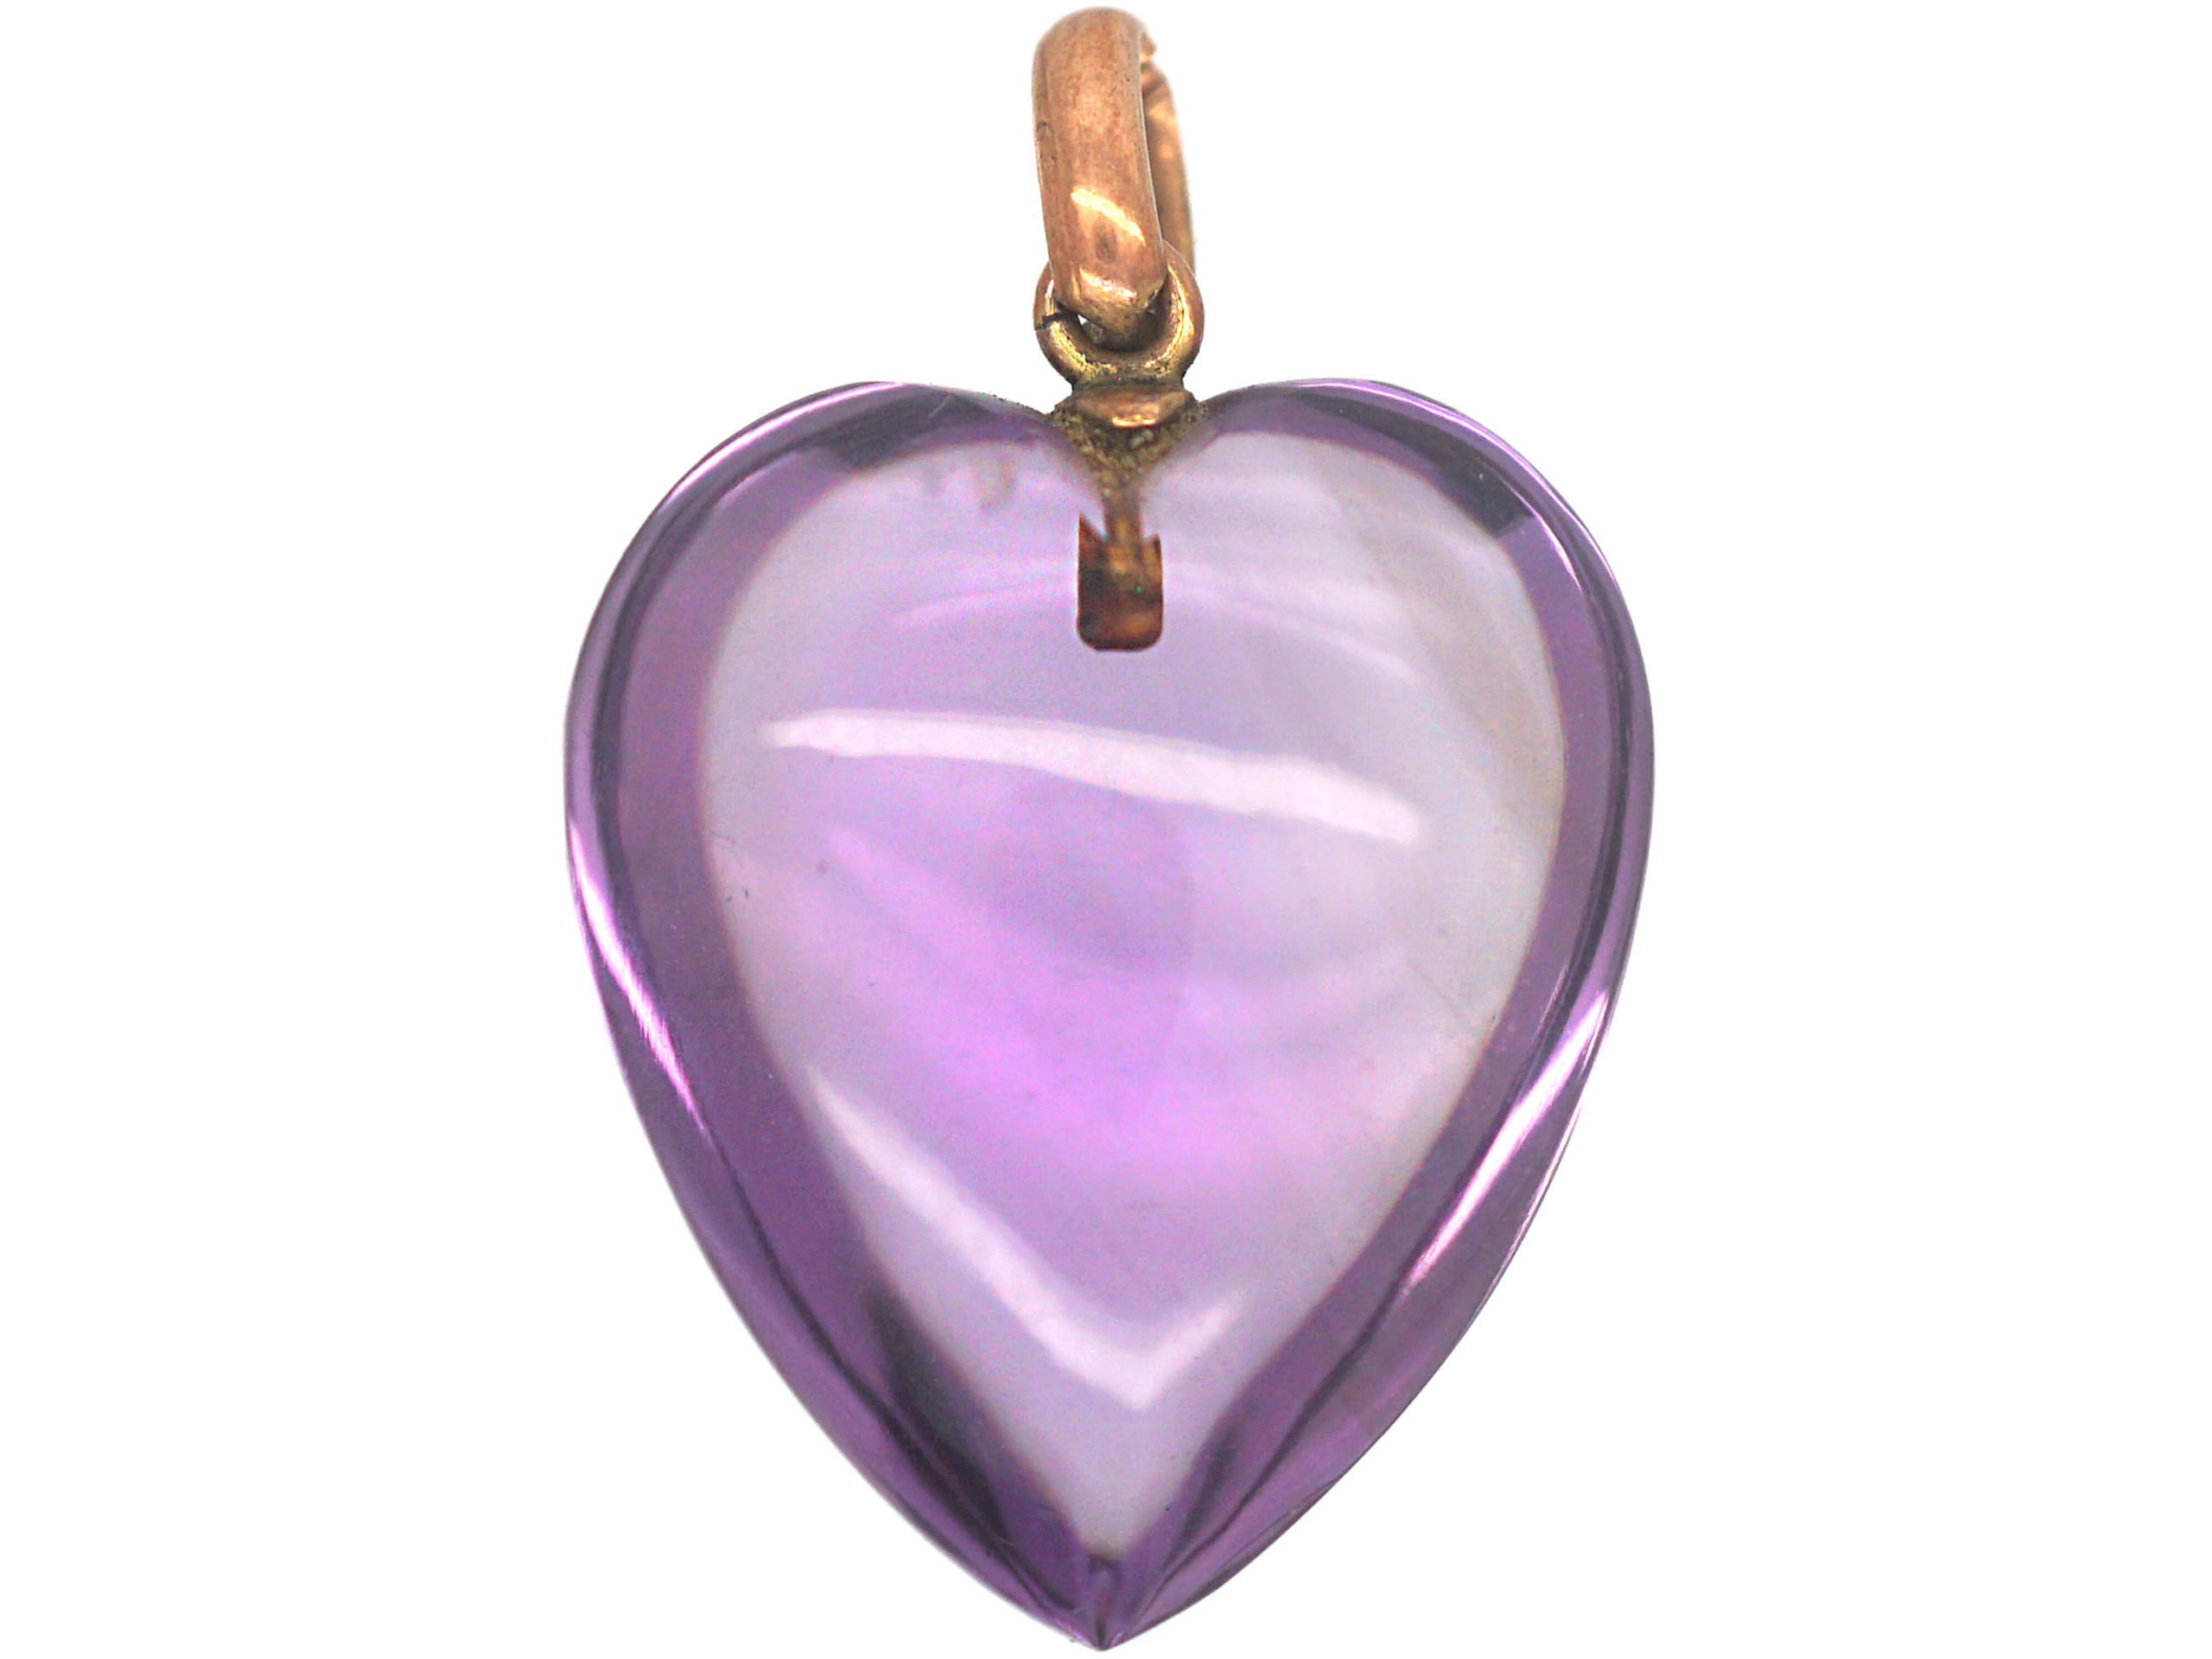 Edwardian Amethyst Heart Pendant with Gold Loop